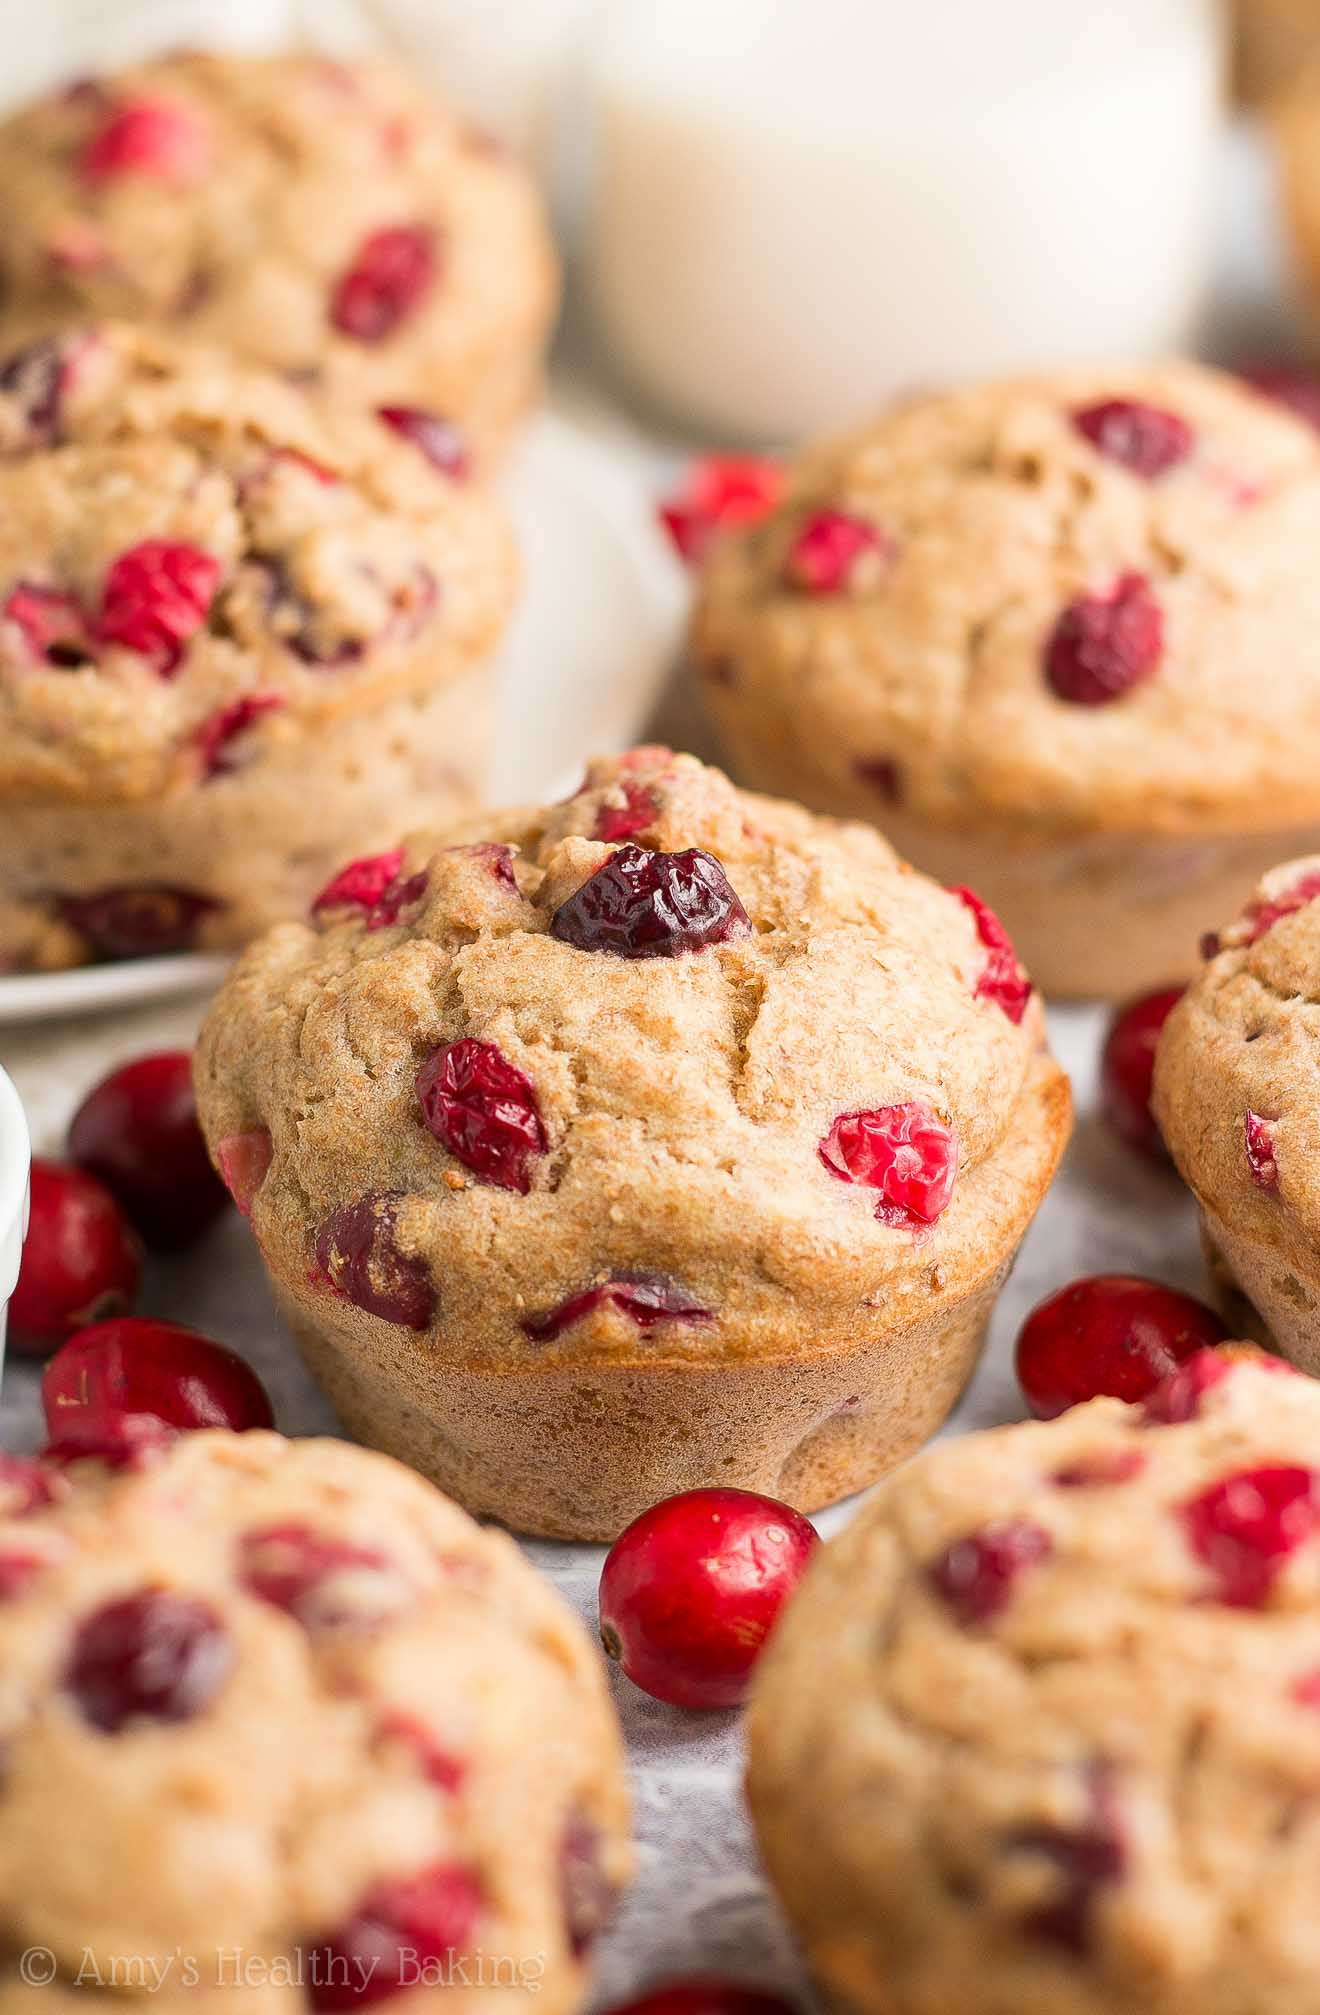 {HEALTHY} Cranberry Banana Muffins -- only 108 calories! They're supremely tender, thanks to a TOP SECRET TRICK! Picky eater approved & no mixer required! I love keeping these on hand for quick breakfasts & snacks! #healthy #recipe #muffins #weightwatchers #easyrecipe #cleaneating #bananamuffins